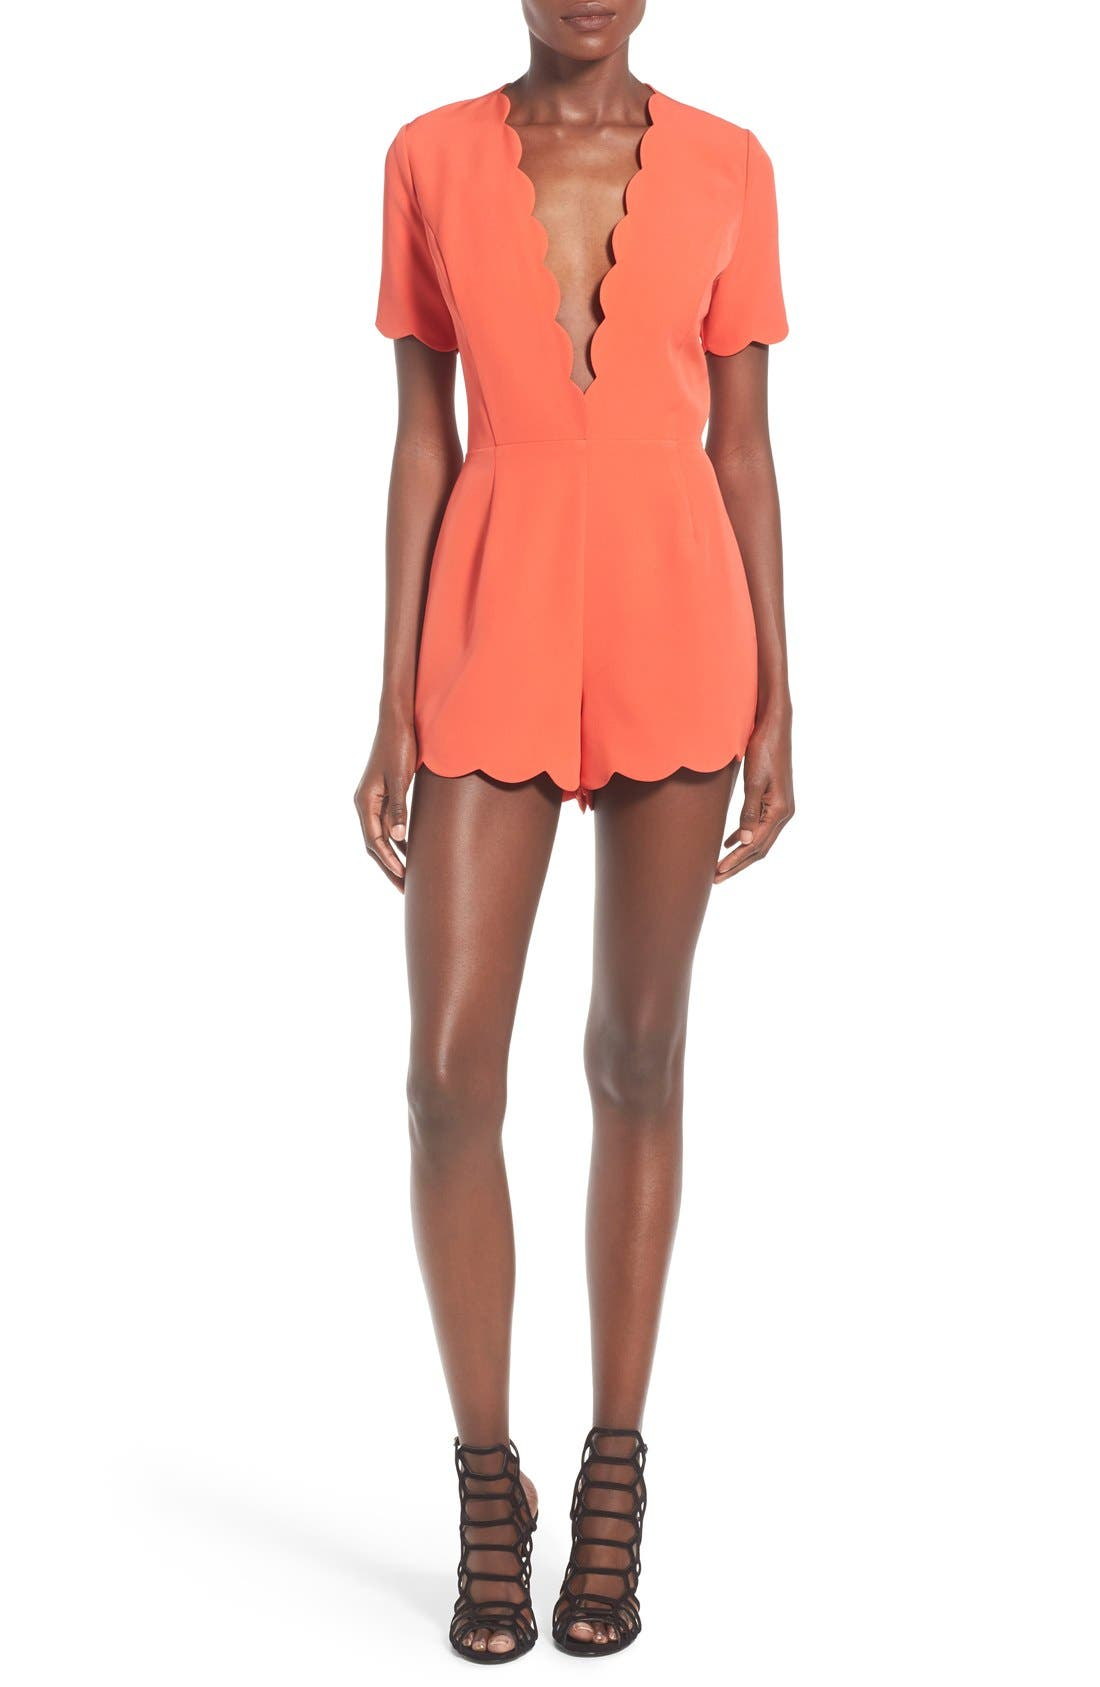 Alternate Image 1 Selected - Storee Scallop Plunge Romper